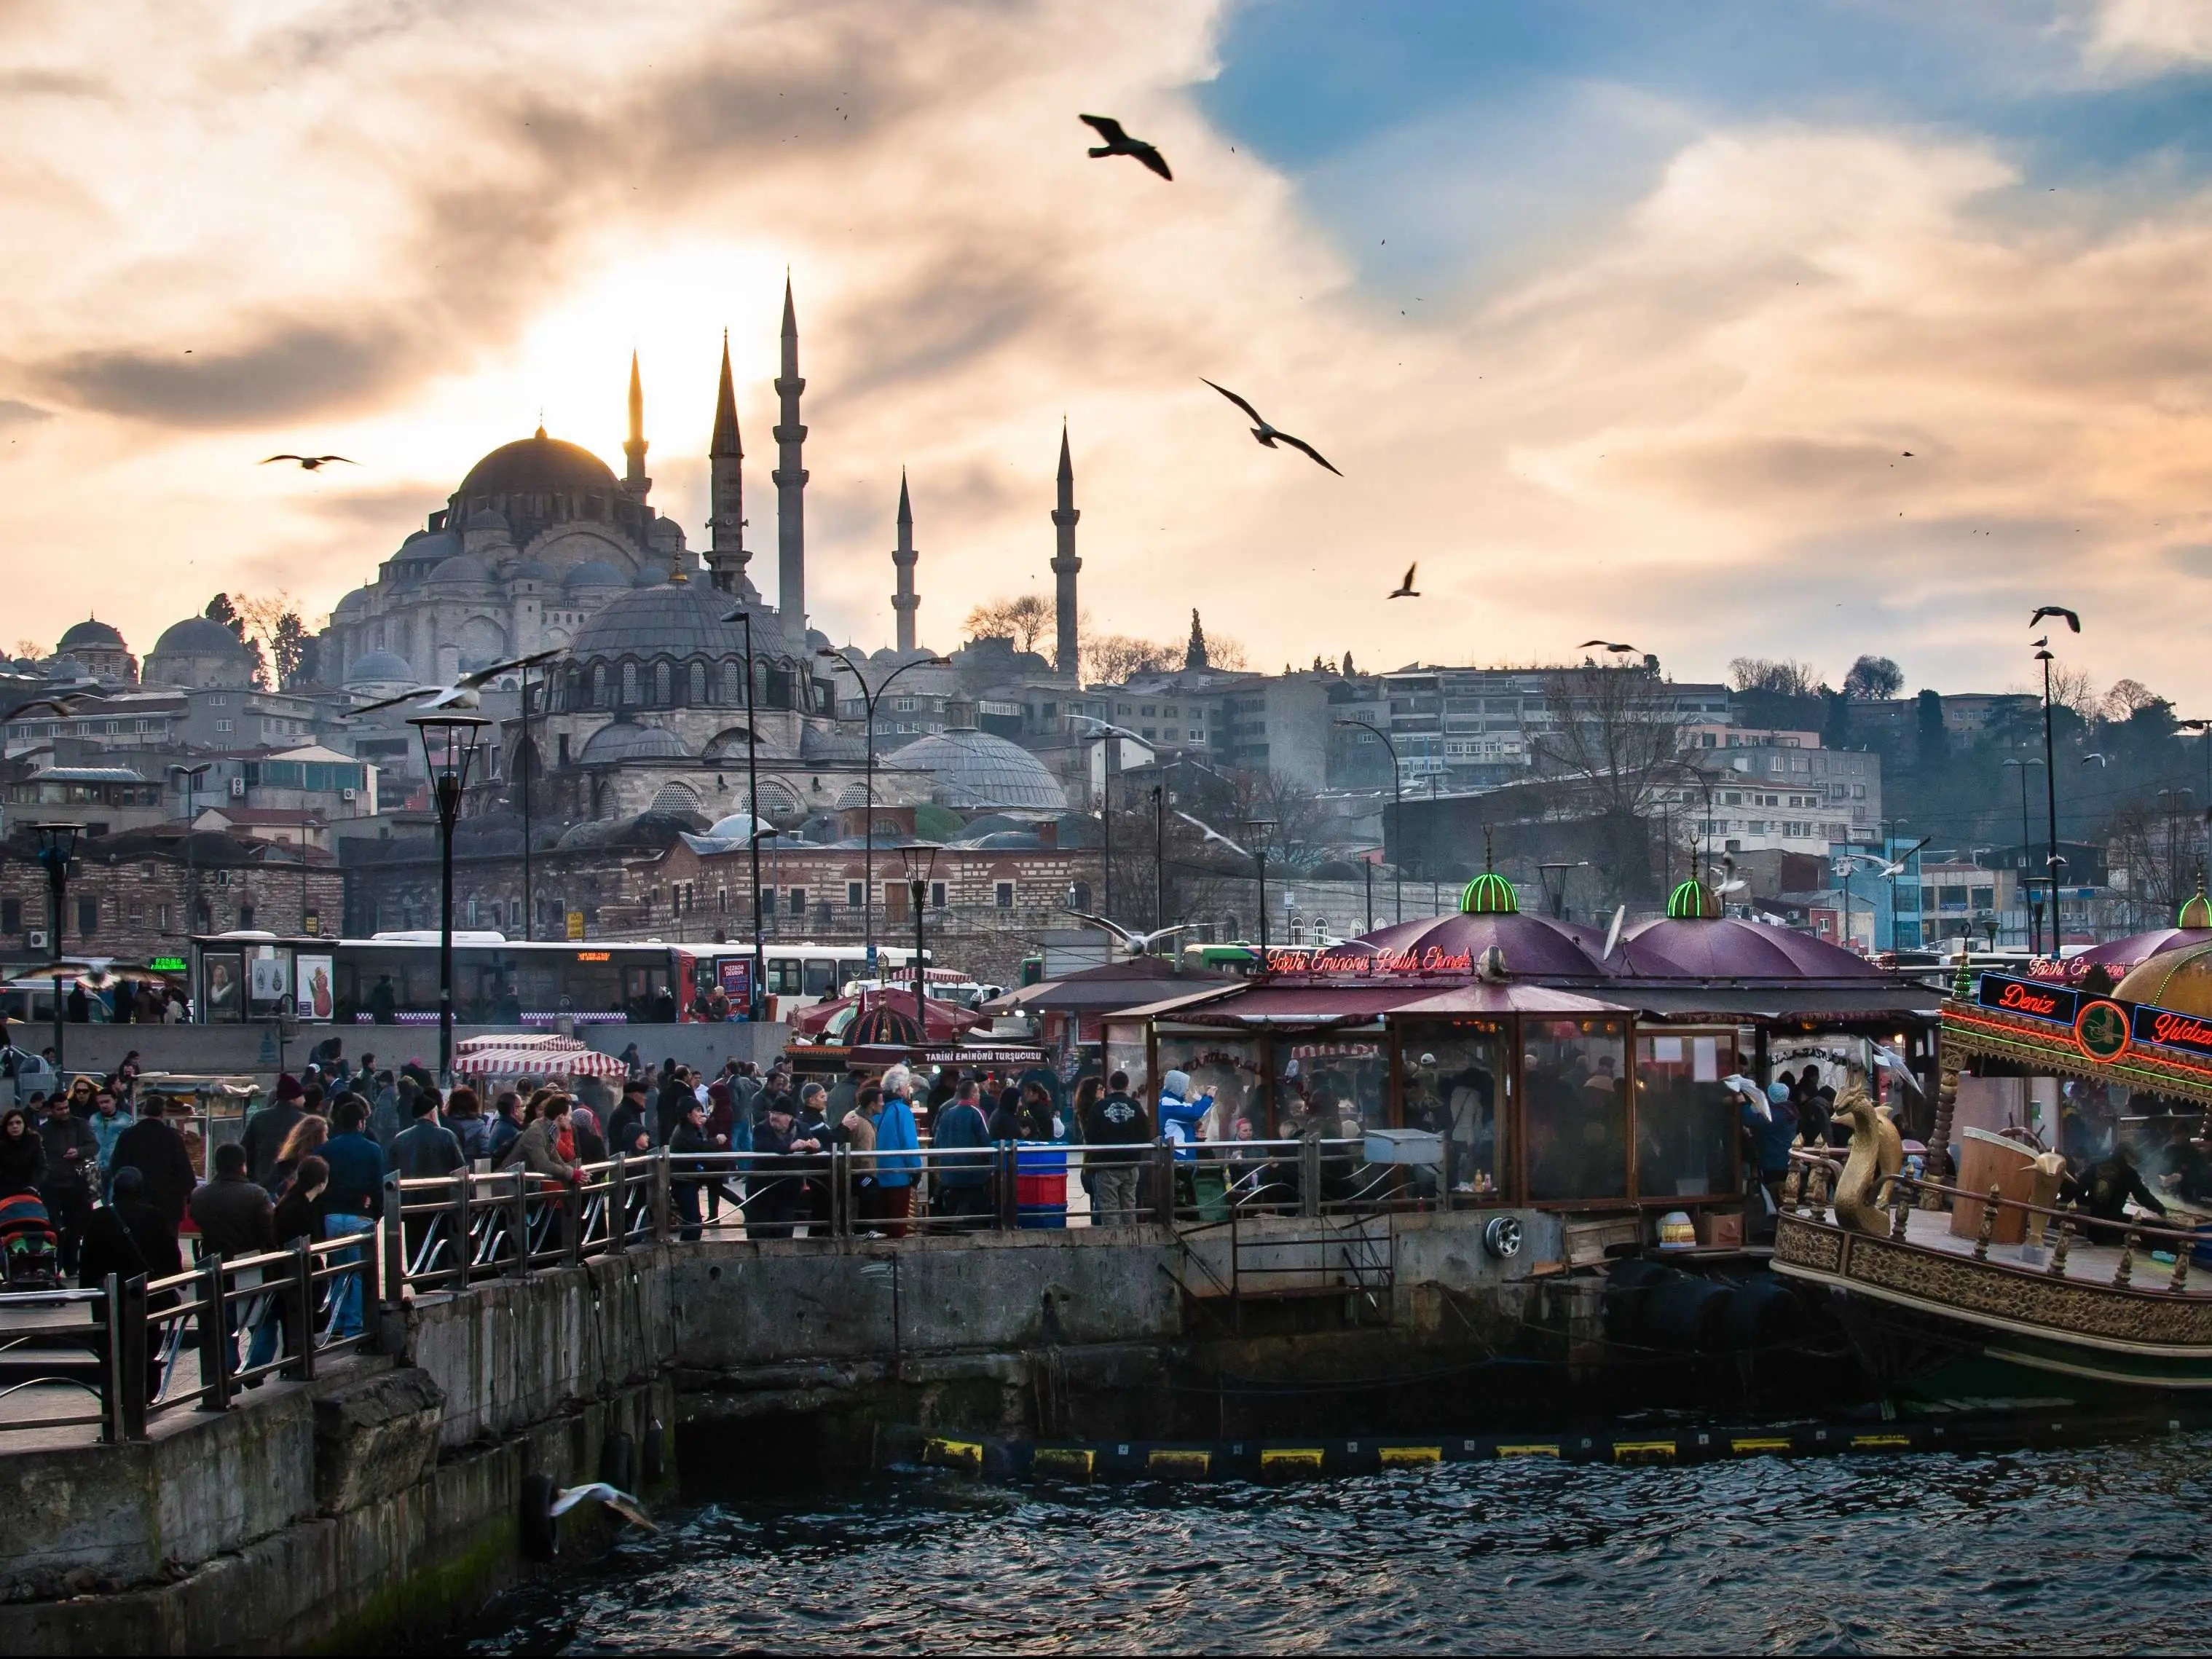 The Süleymaniye Mosque presides over Istanbul like the sultan its named for, Süleyman the Magnificent.